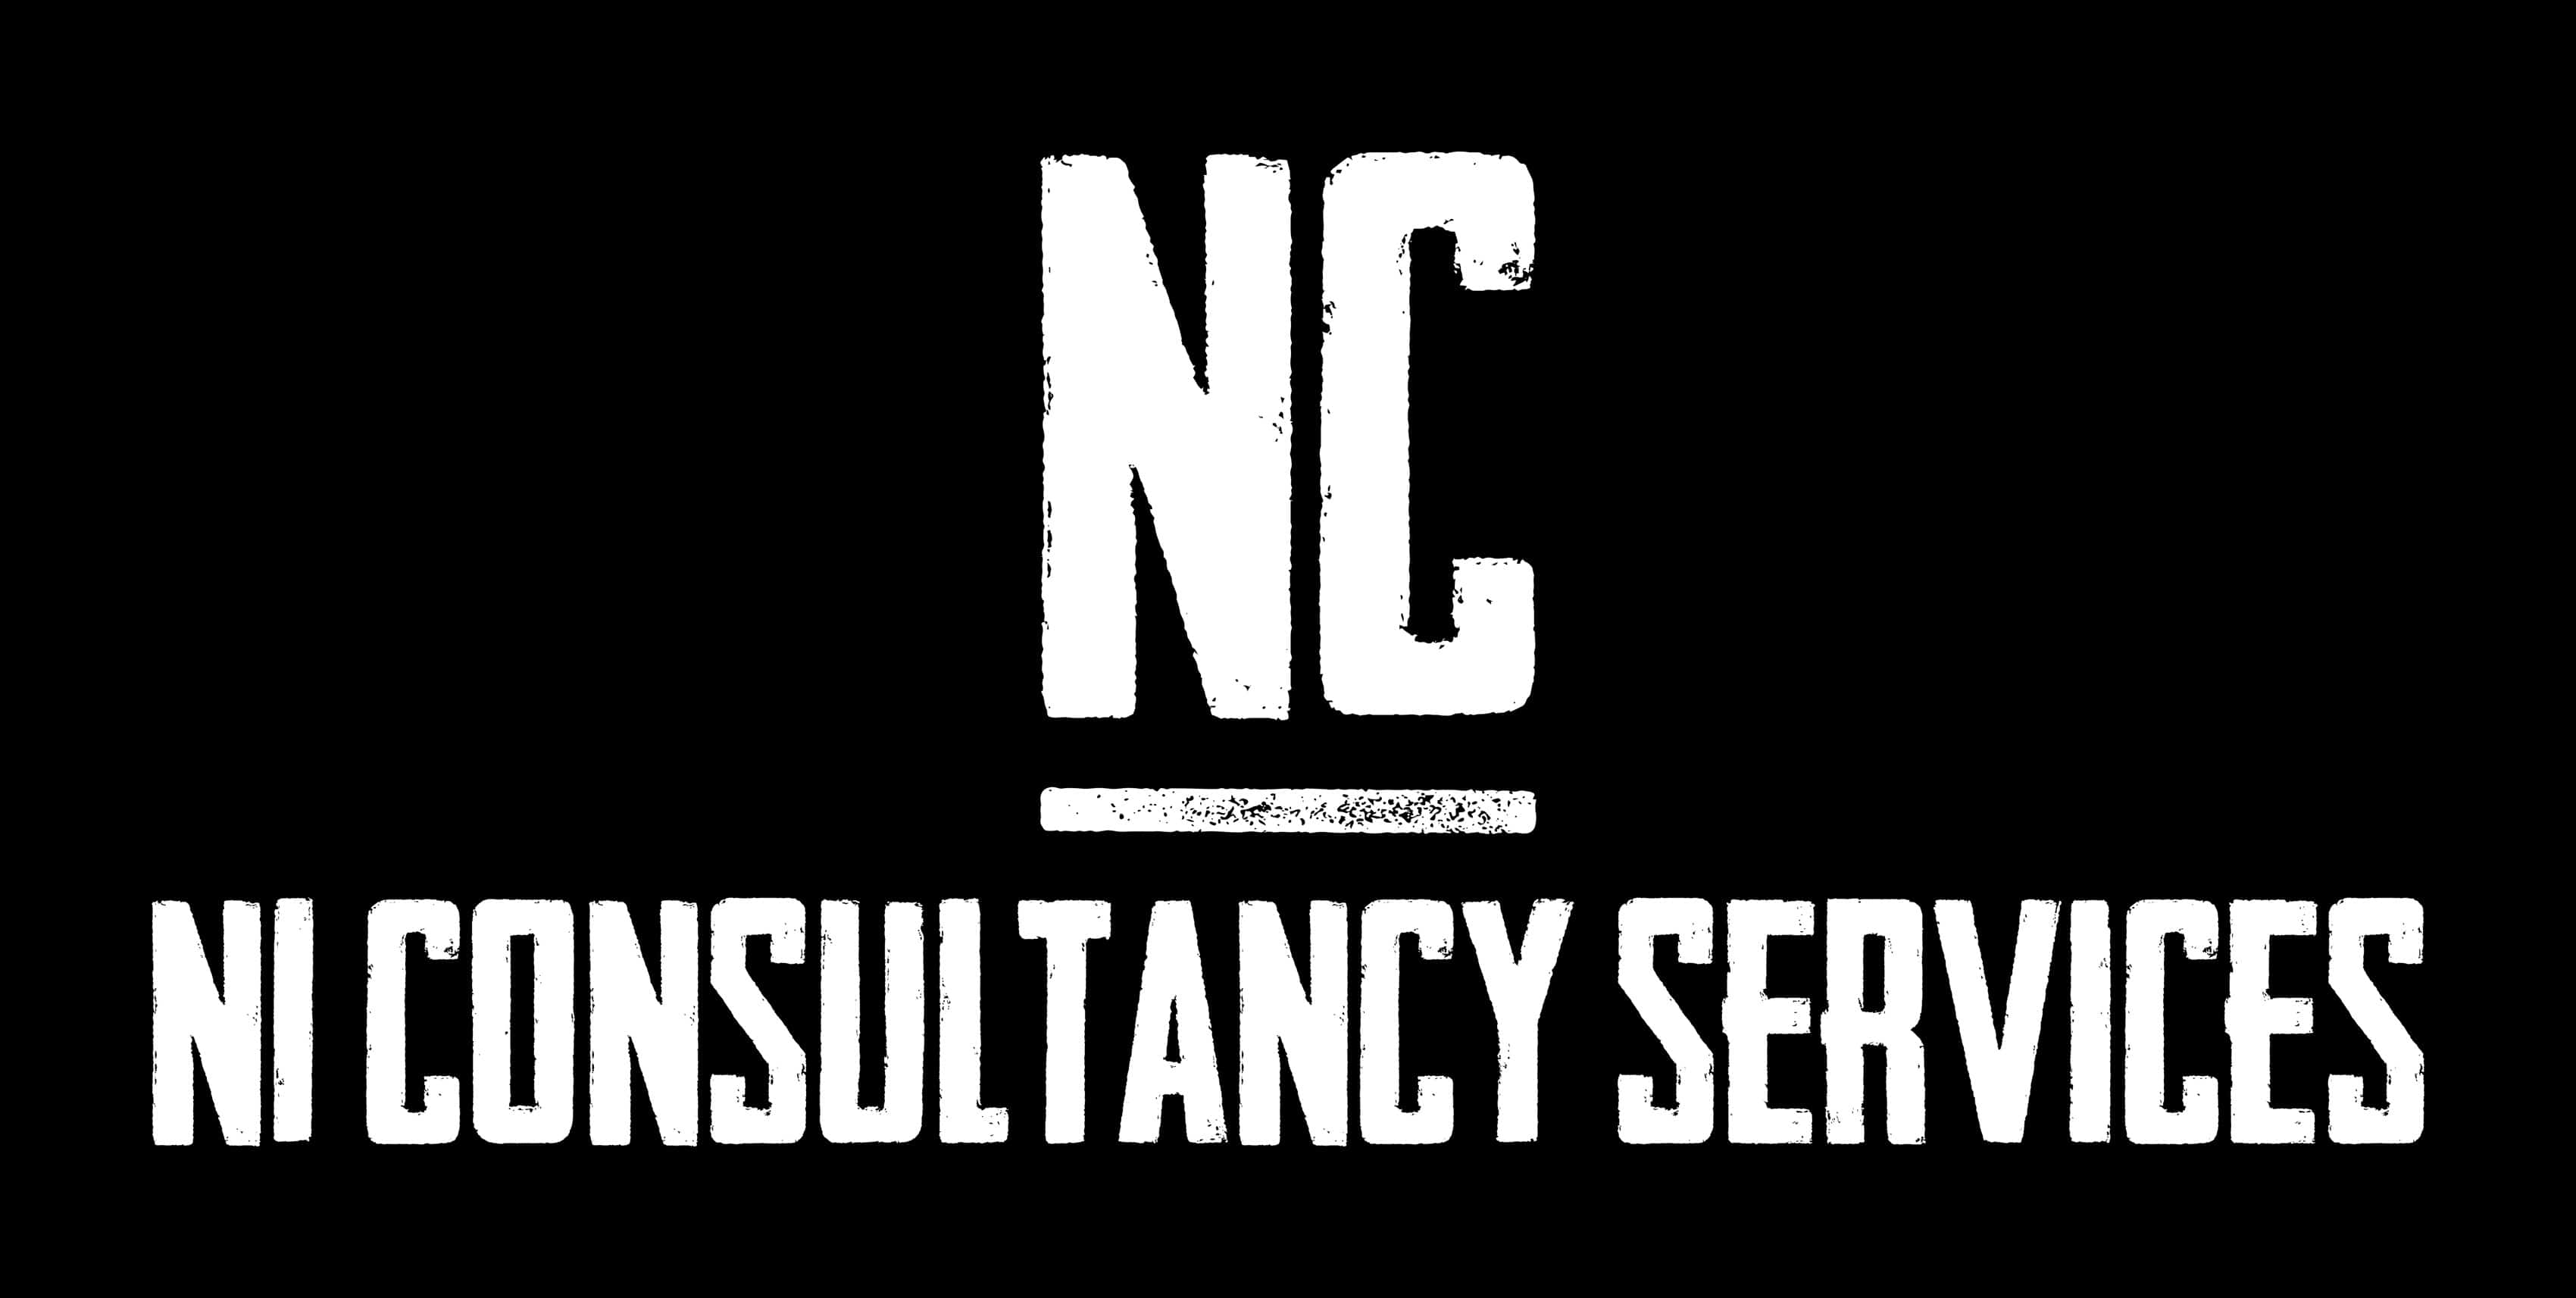 N1 Consultancy Services Ltd logo